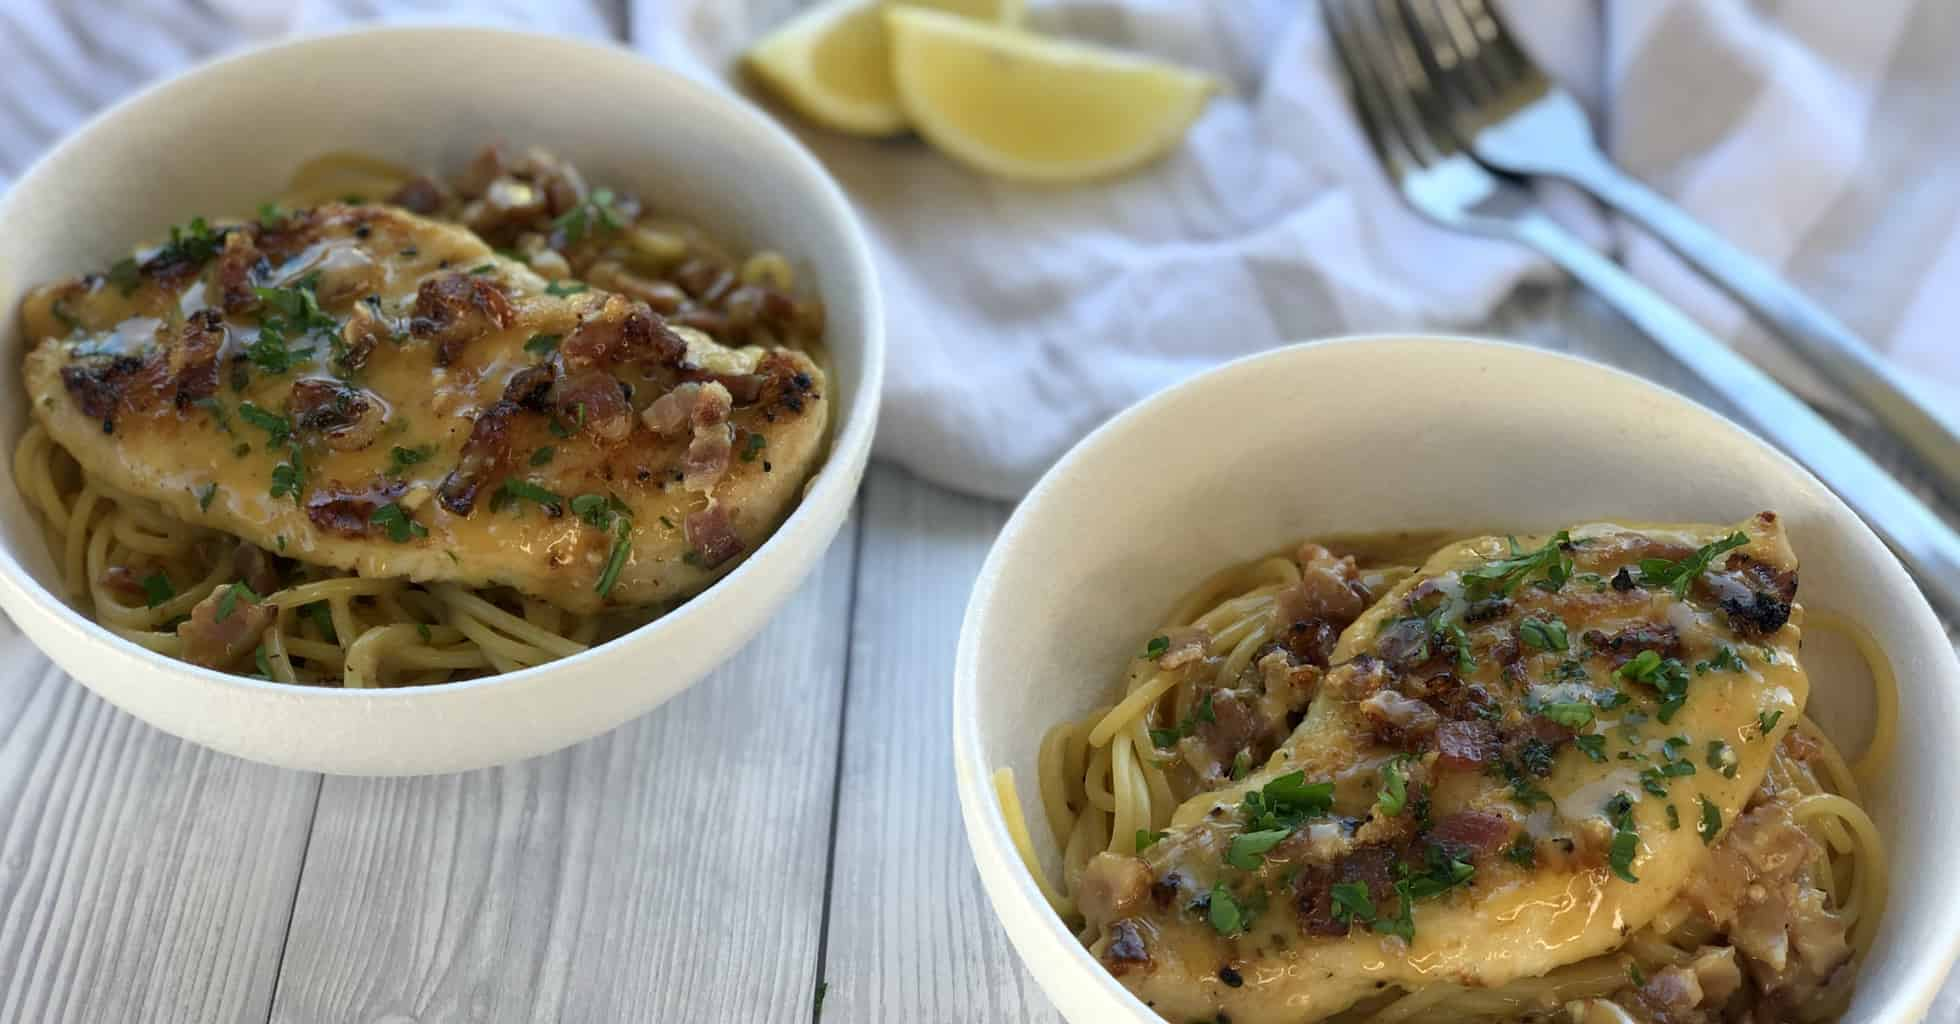 Two bowls of noodles with a chicken breast placed on top and creamy sauce